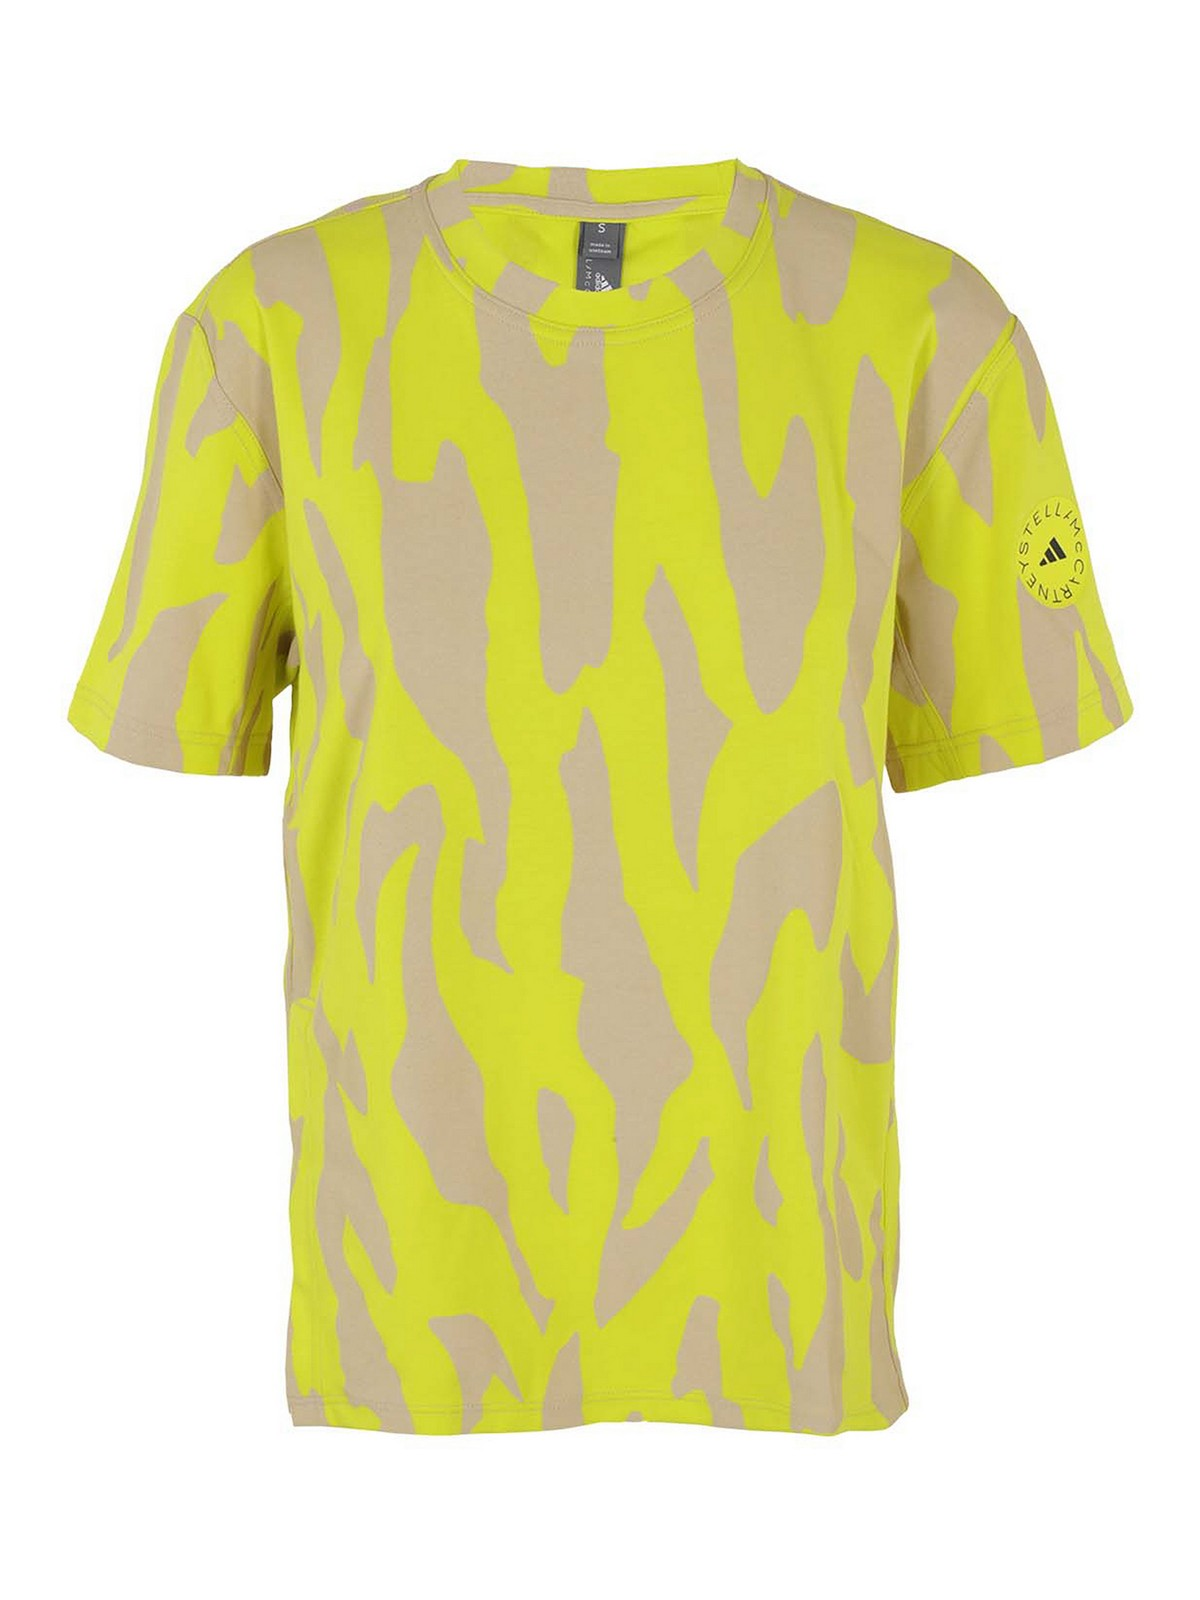 Adidas By Stella Mccartney T-shirts FLUO MACULATED T-SHIRT